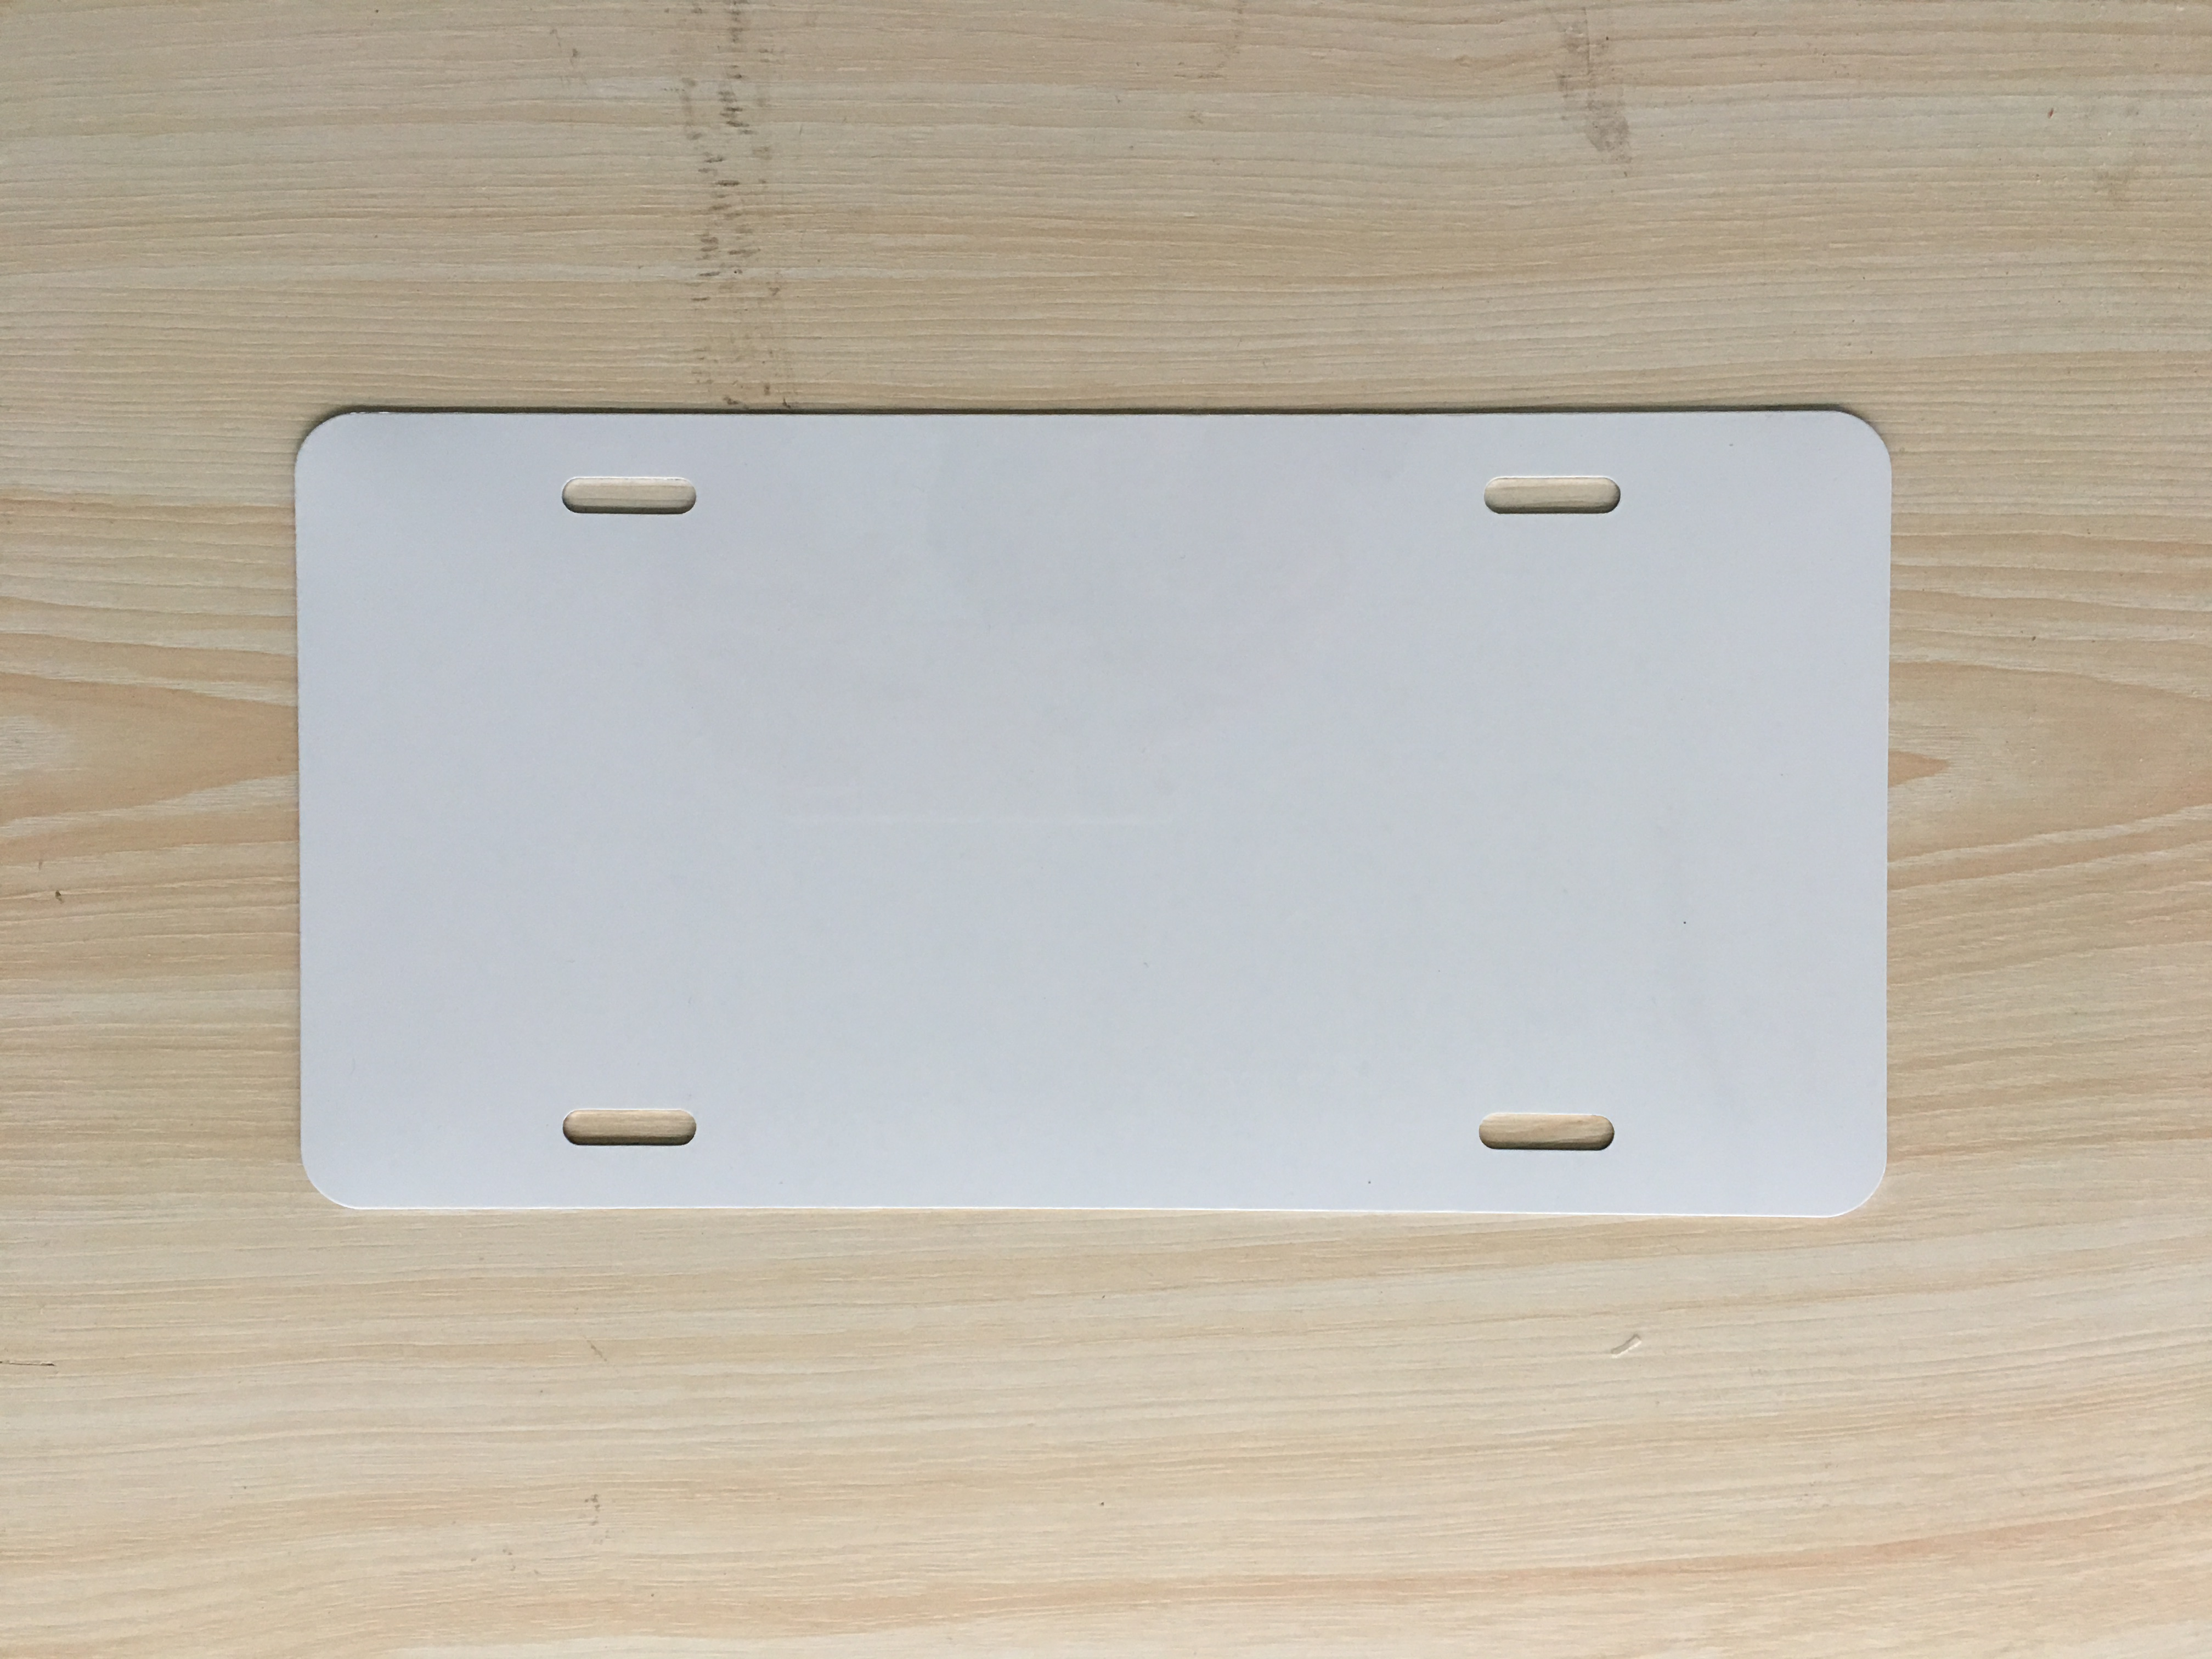 High Quality Aluminum White Coated Sublimation Blank License Plate Blank Number Plate